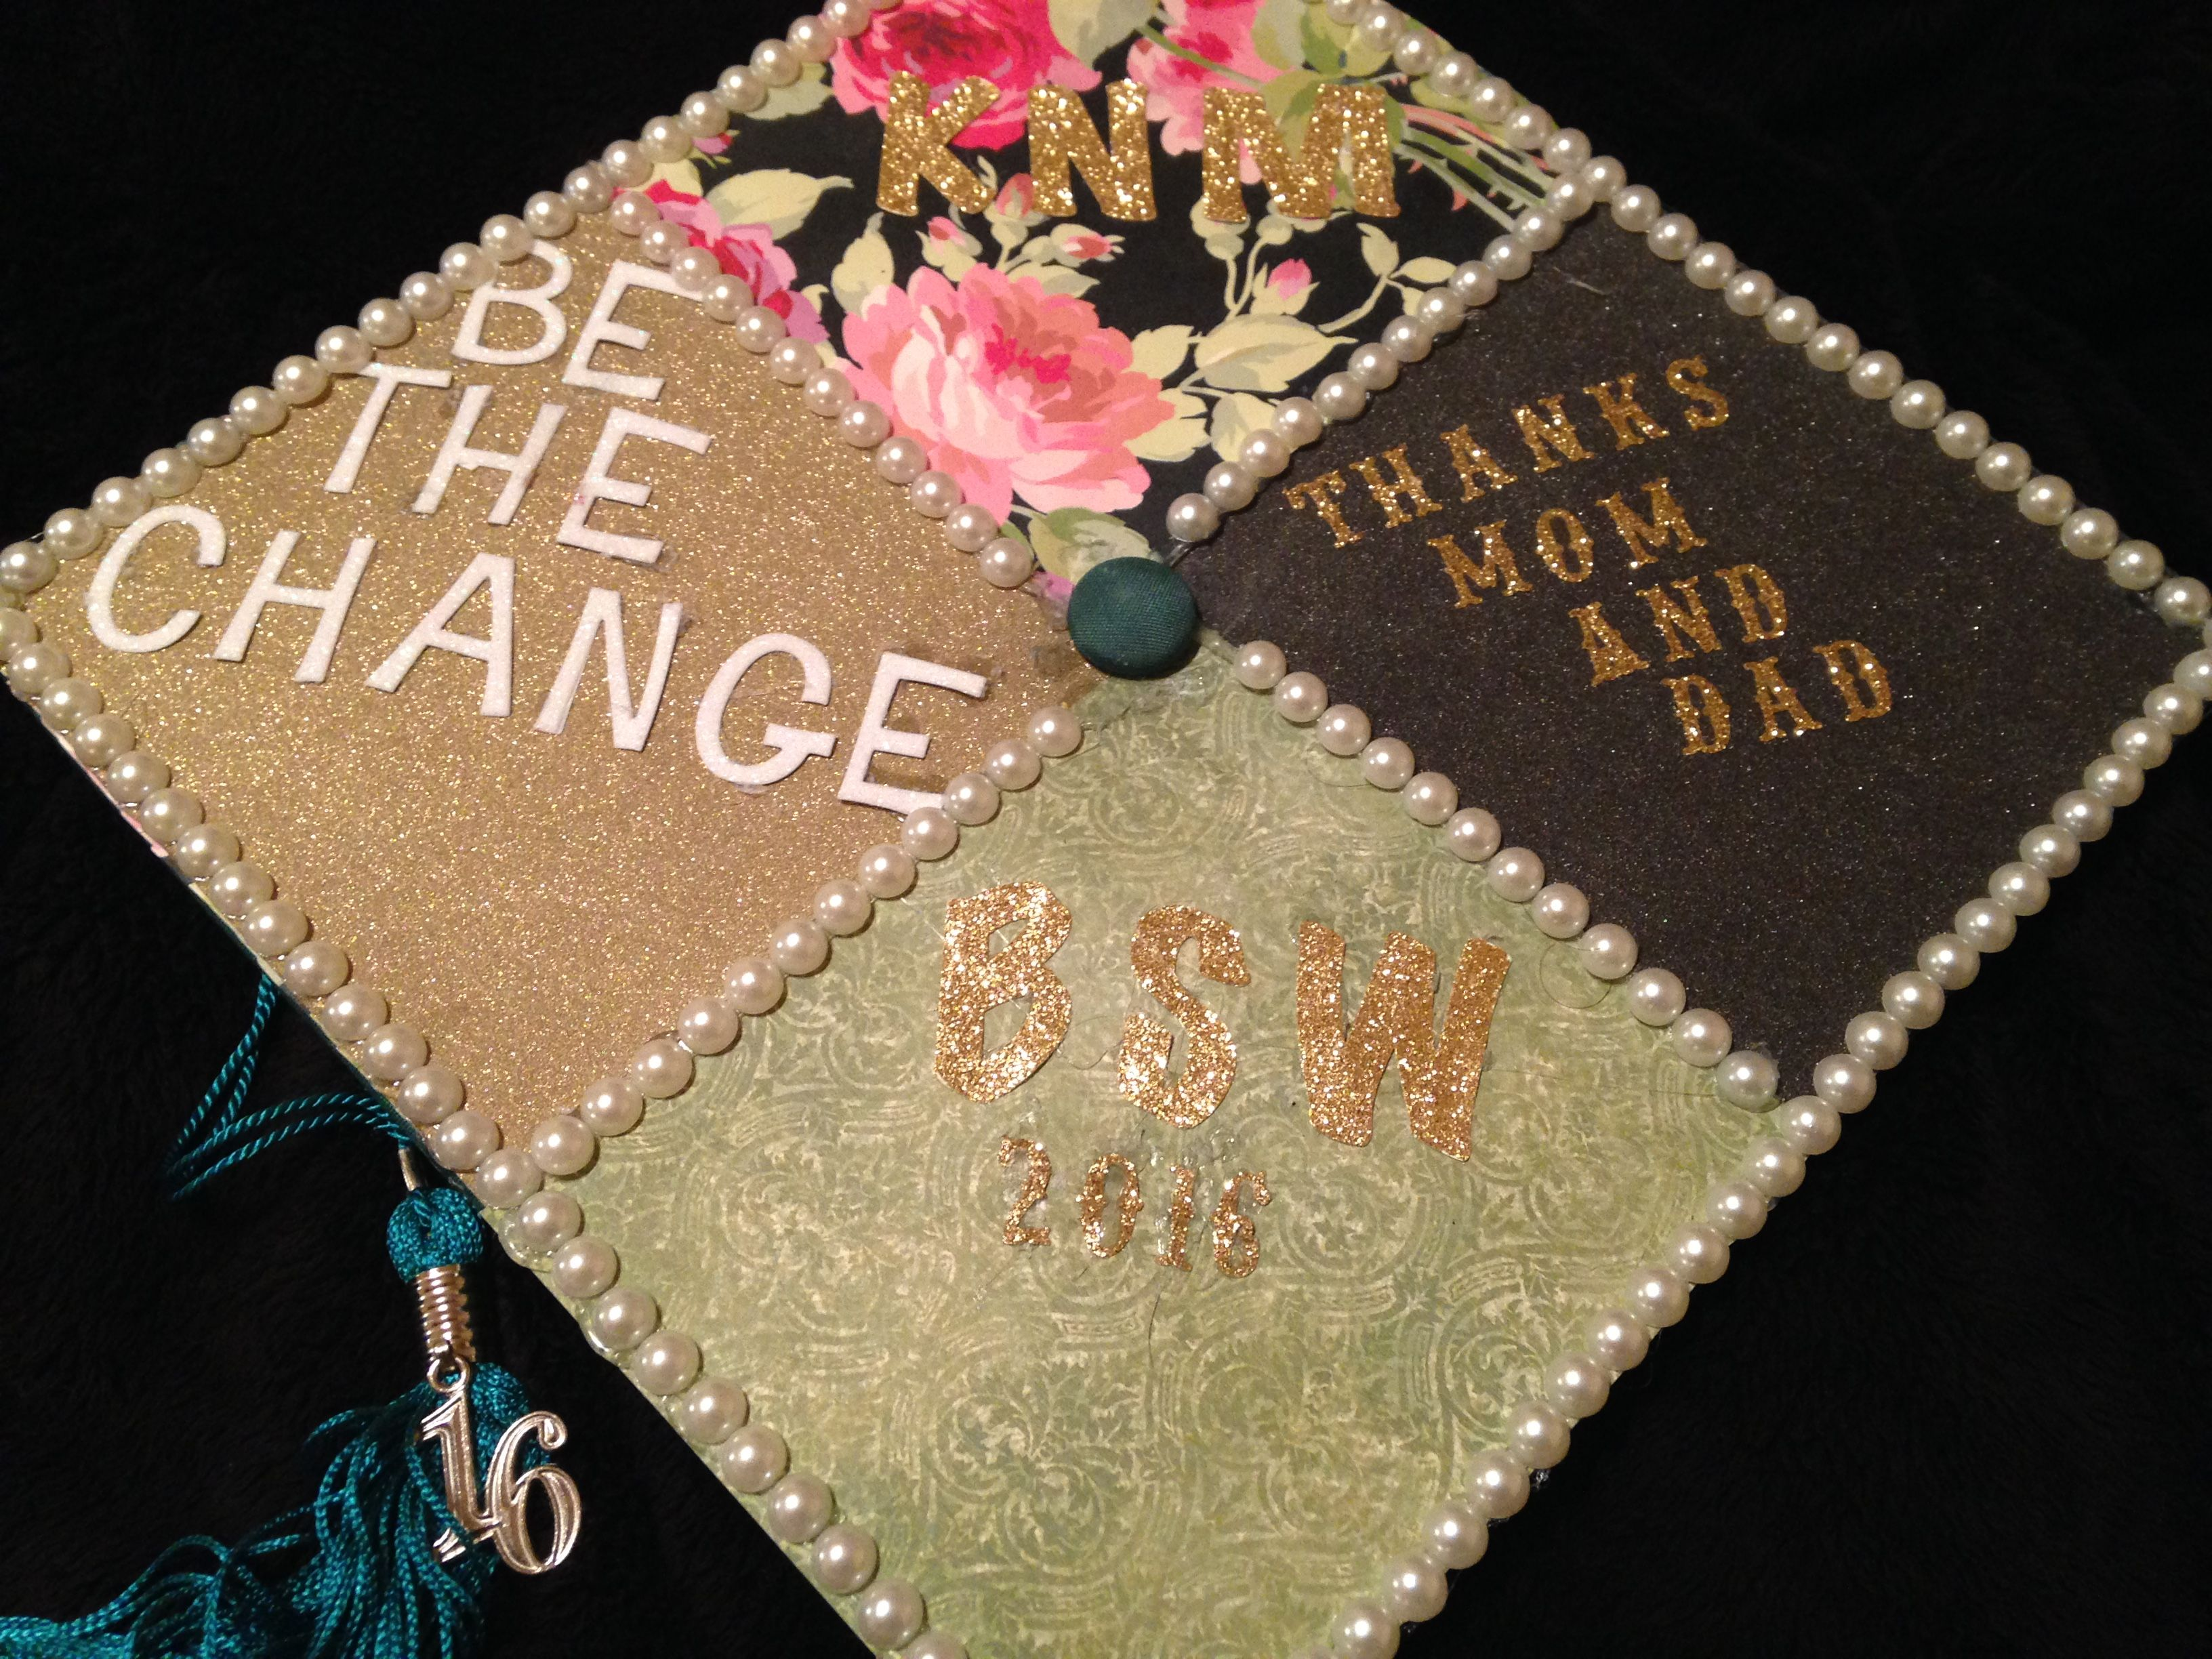 Graduation Cap Bachelor Of Social Work Bsw Be The Change Thanks Mom And Dad Initials Social Work Graduation Cap Graduation Cap Decoration Graduation Cap